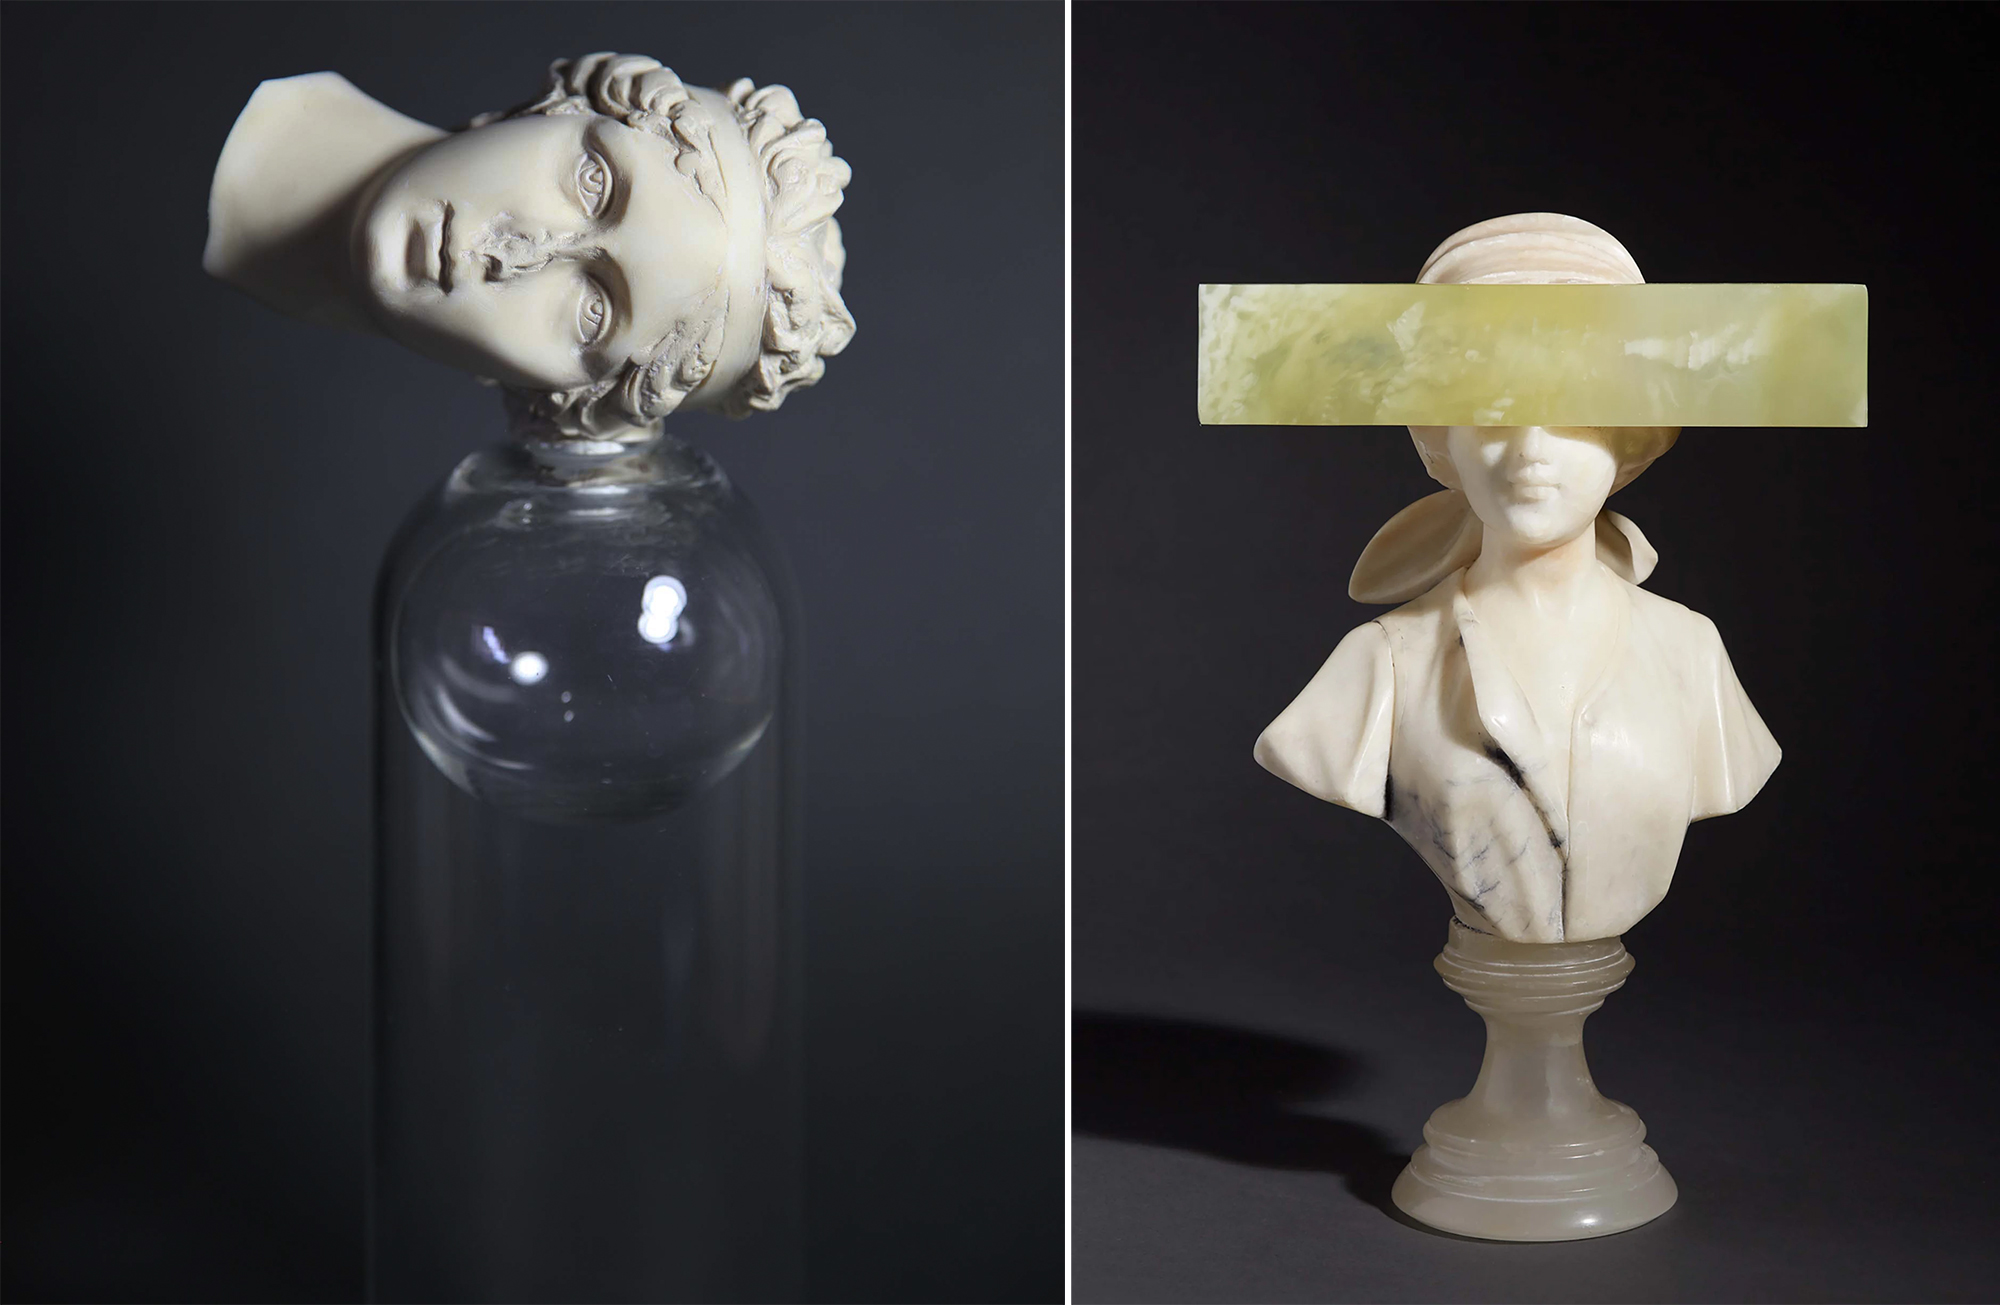 Unearthly Anatomical Works Sculpted in Crystal and Glass by Debra Baxter Explore Grief and Loss